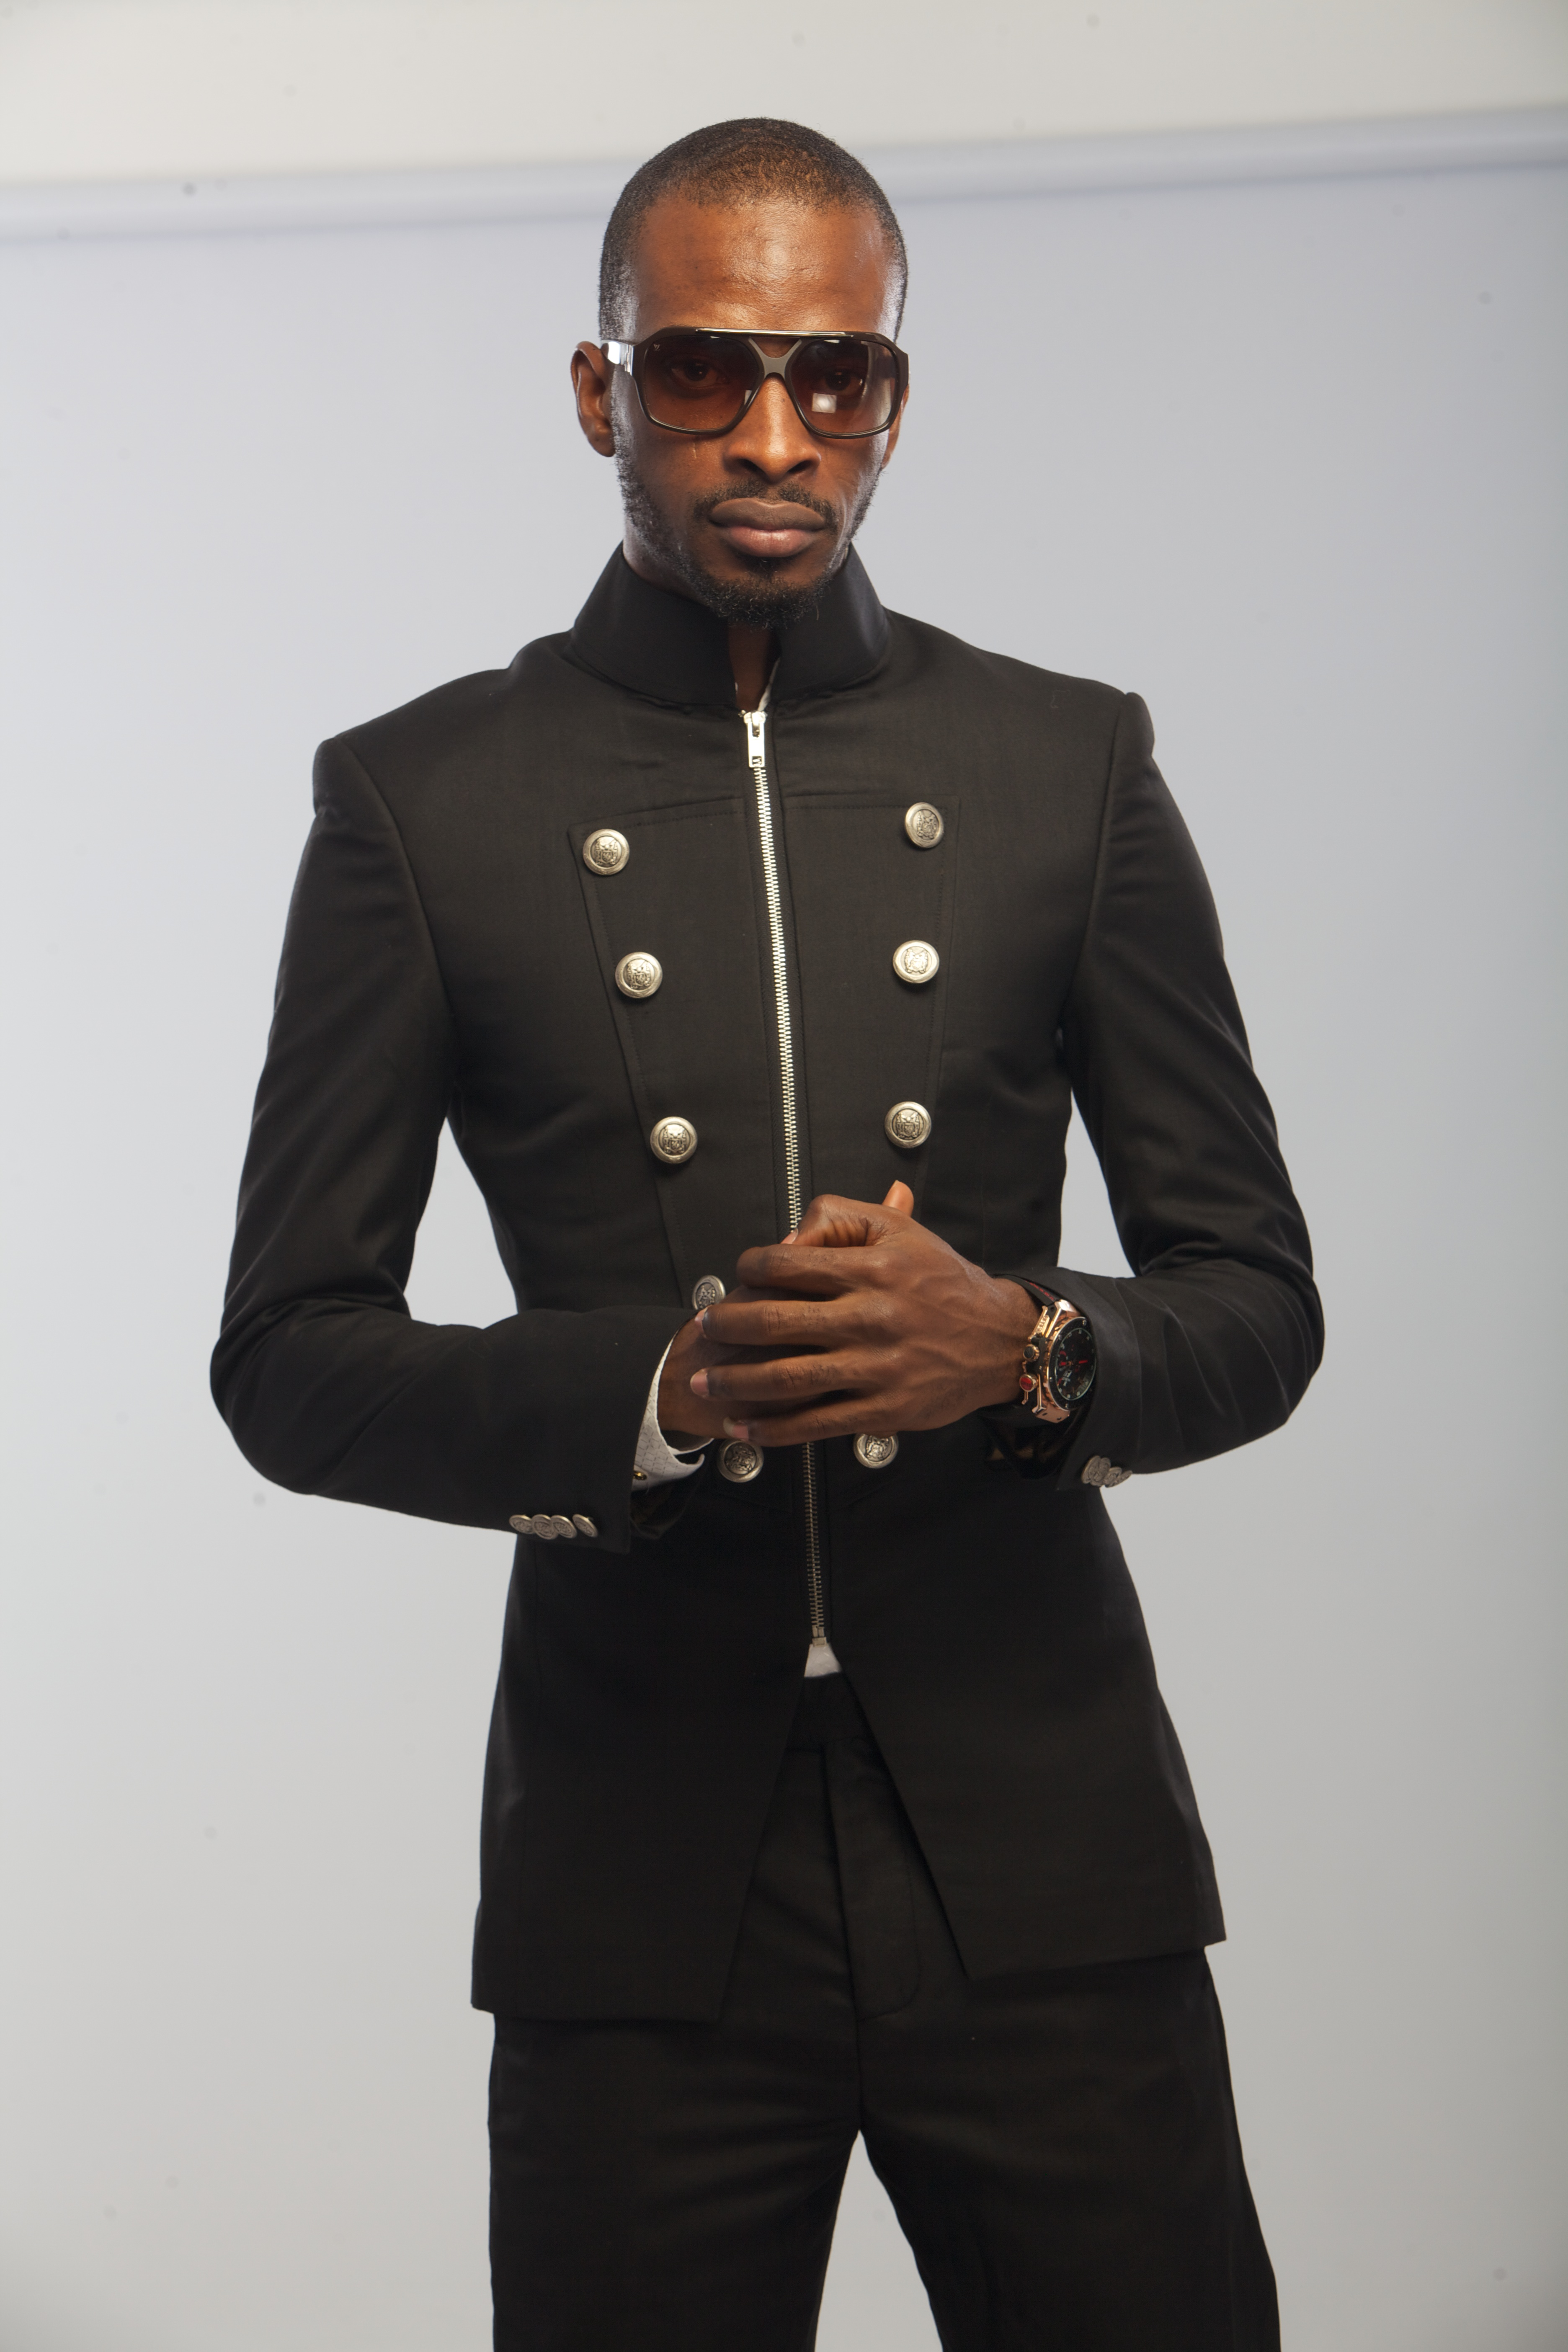 9ice photo in a suit